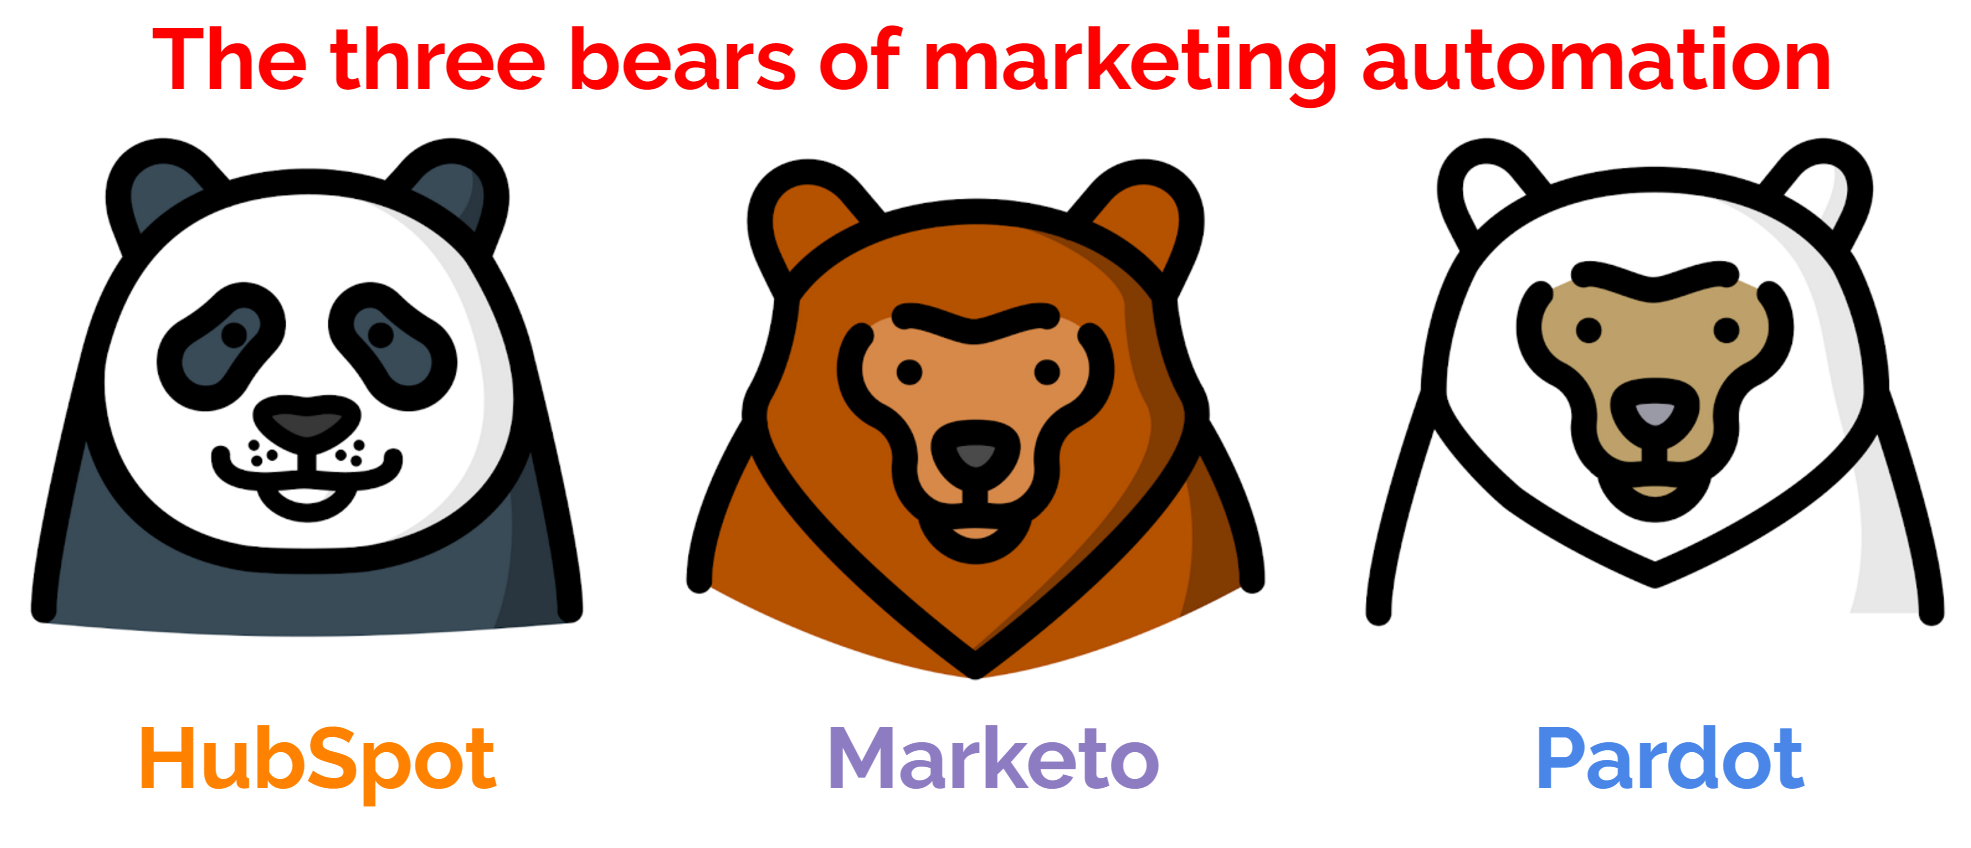 3 Bears of Marketing Automation.png